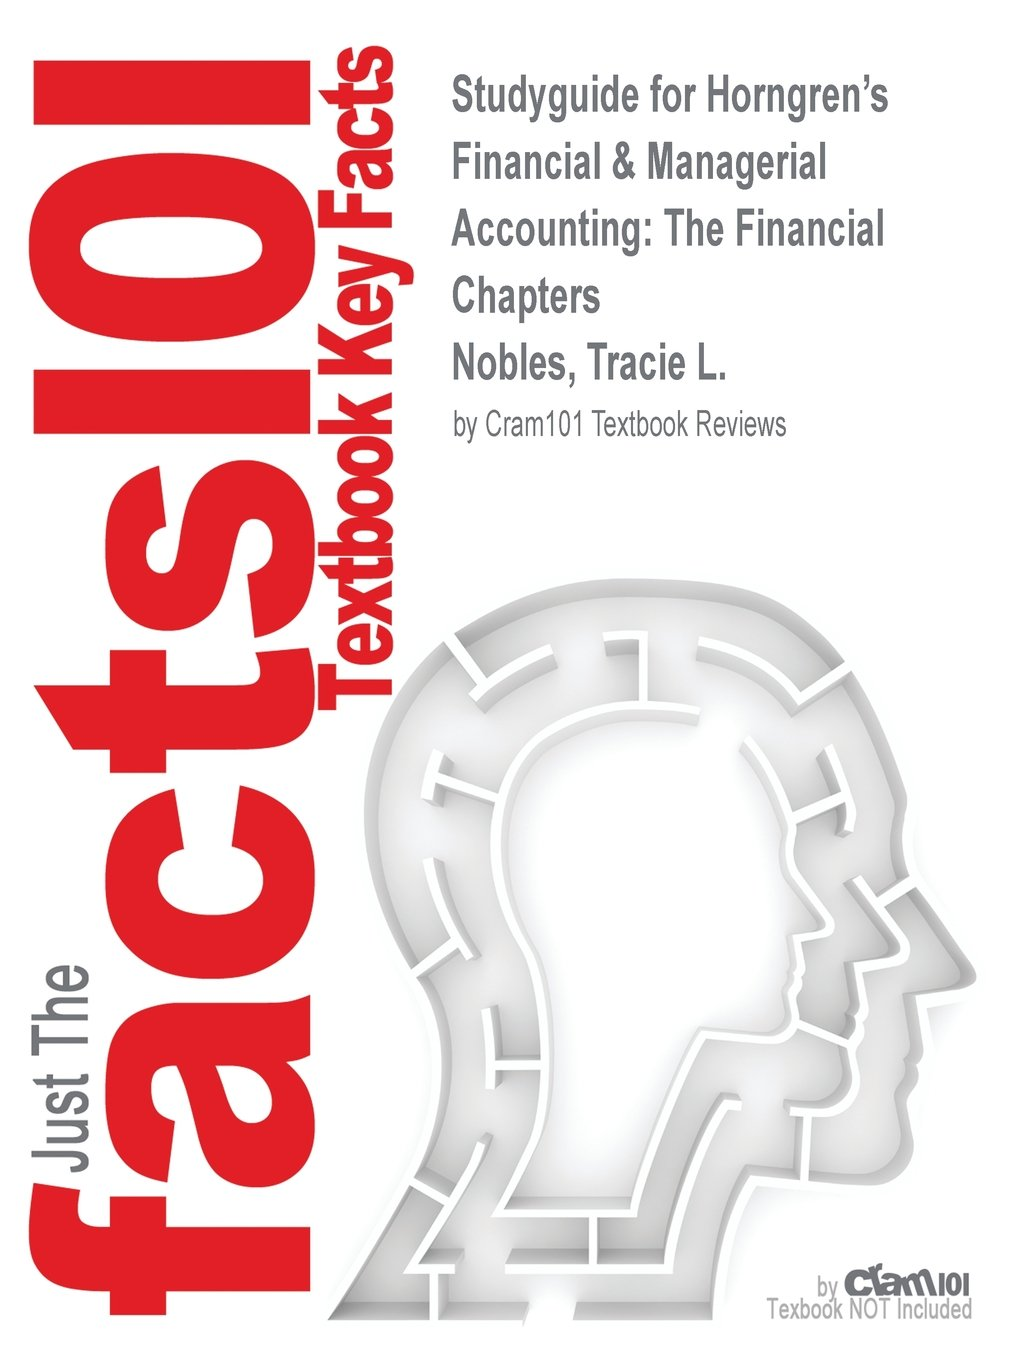 Read Online Studyguide for Horngren's Financial & Managerial Accounting: The Financial Chapters by Nobles, Tracie L., ISBN 9780133356571 pdf epub